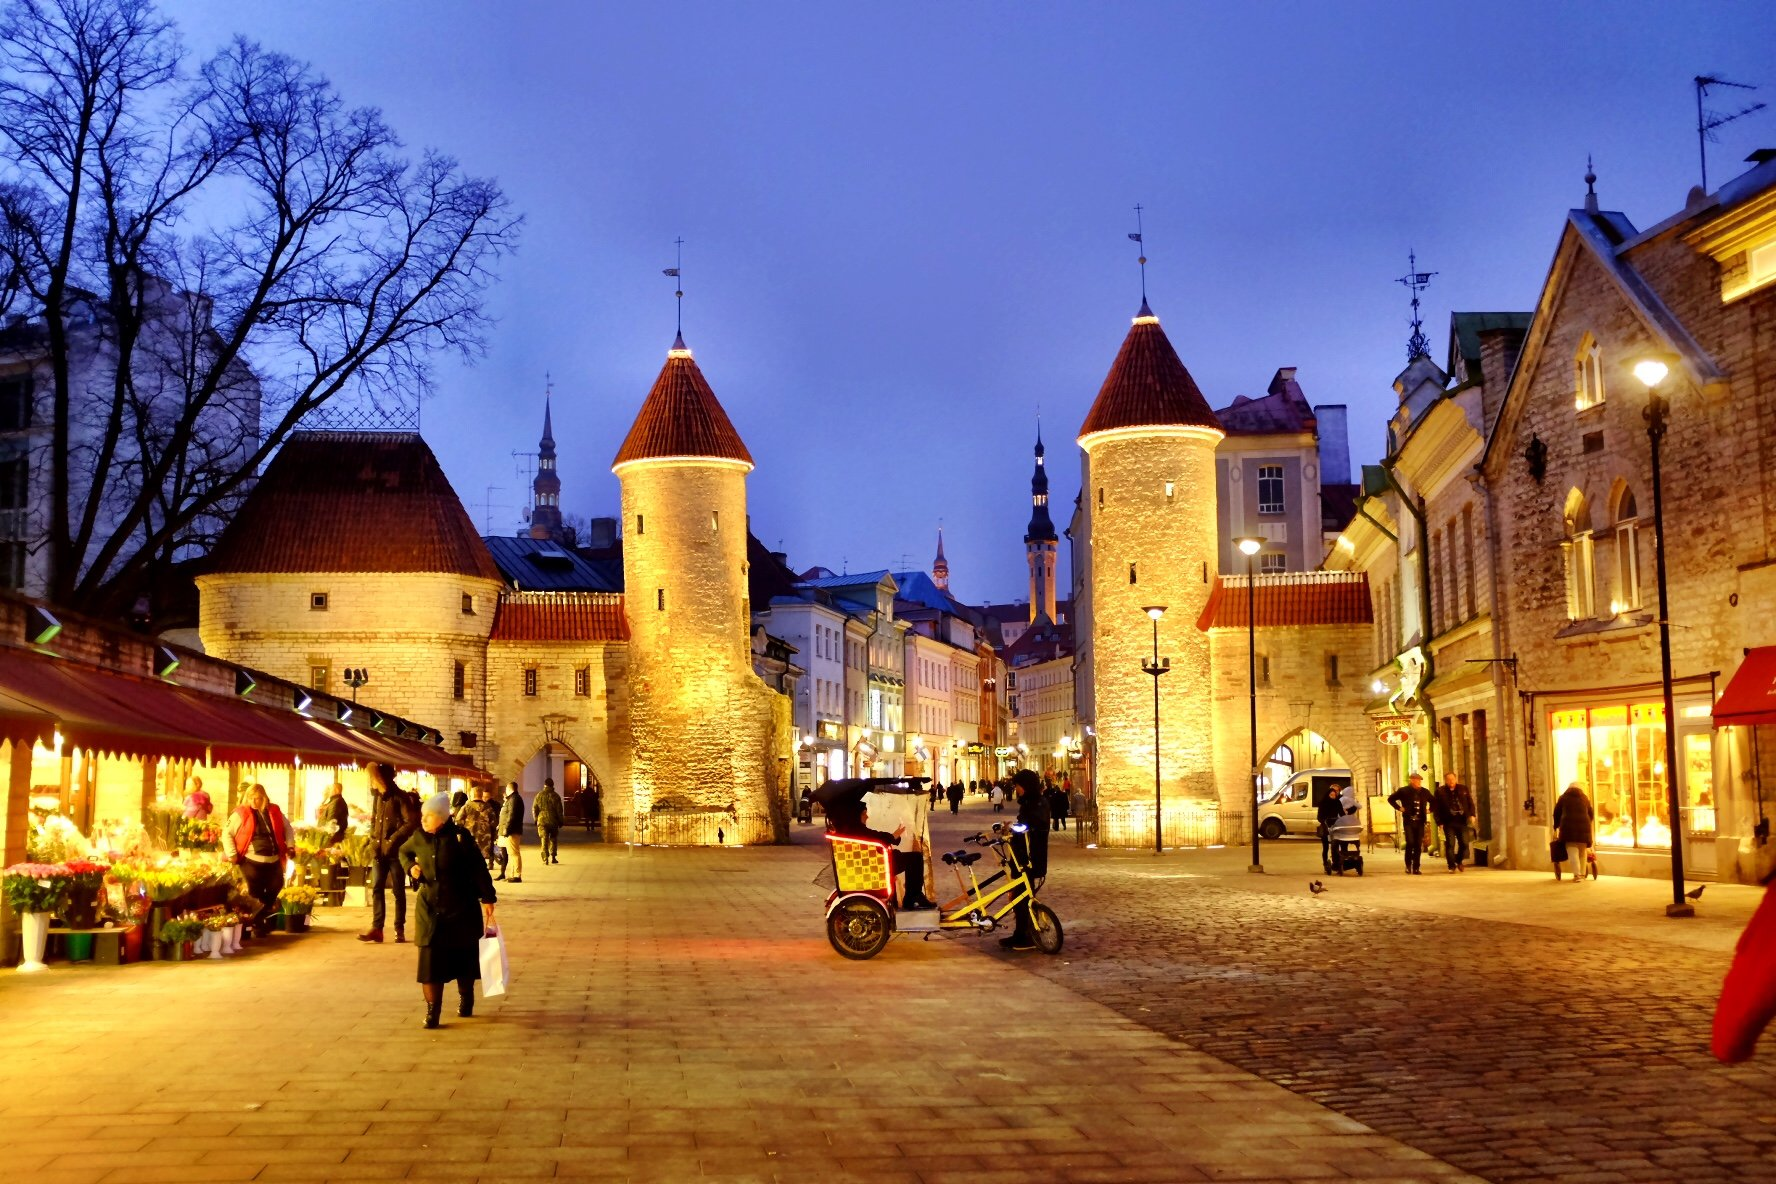 Entrance to Tallinn with two guard towers in the evening.